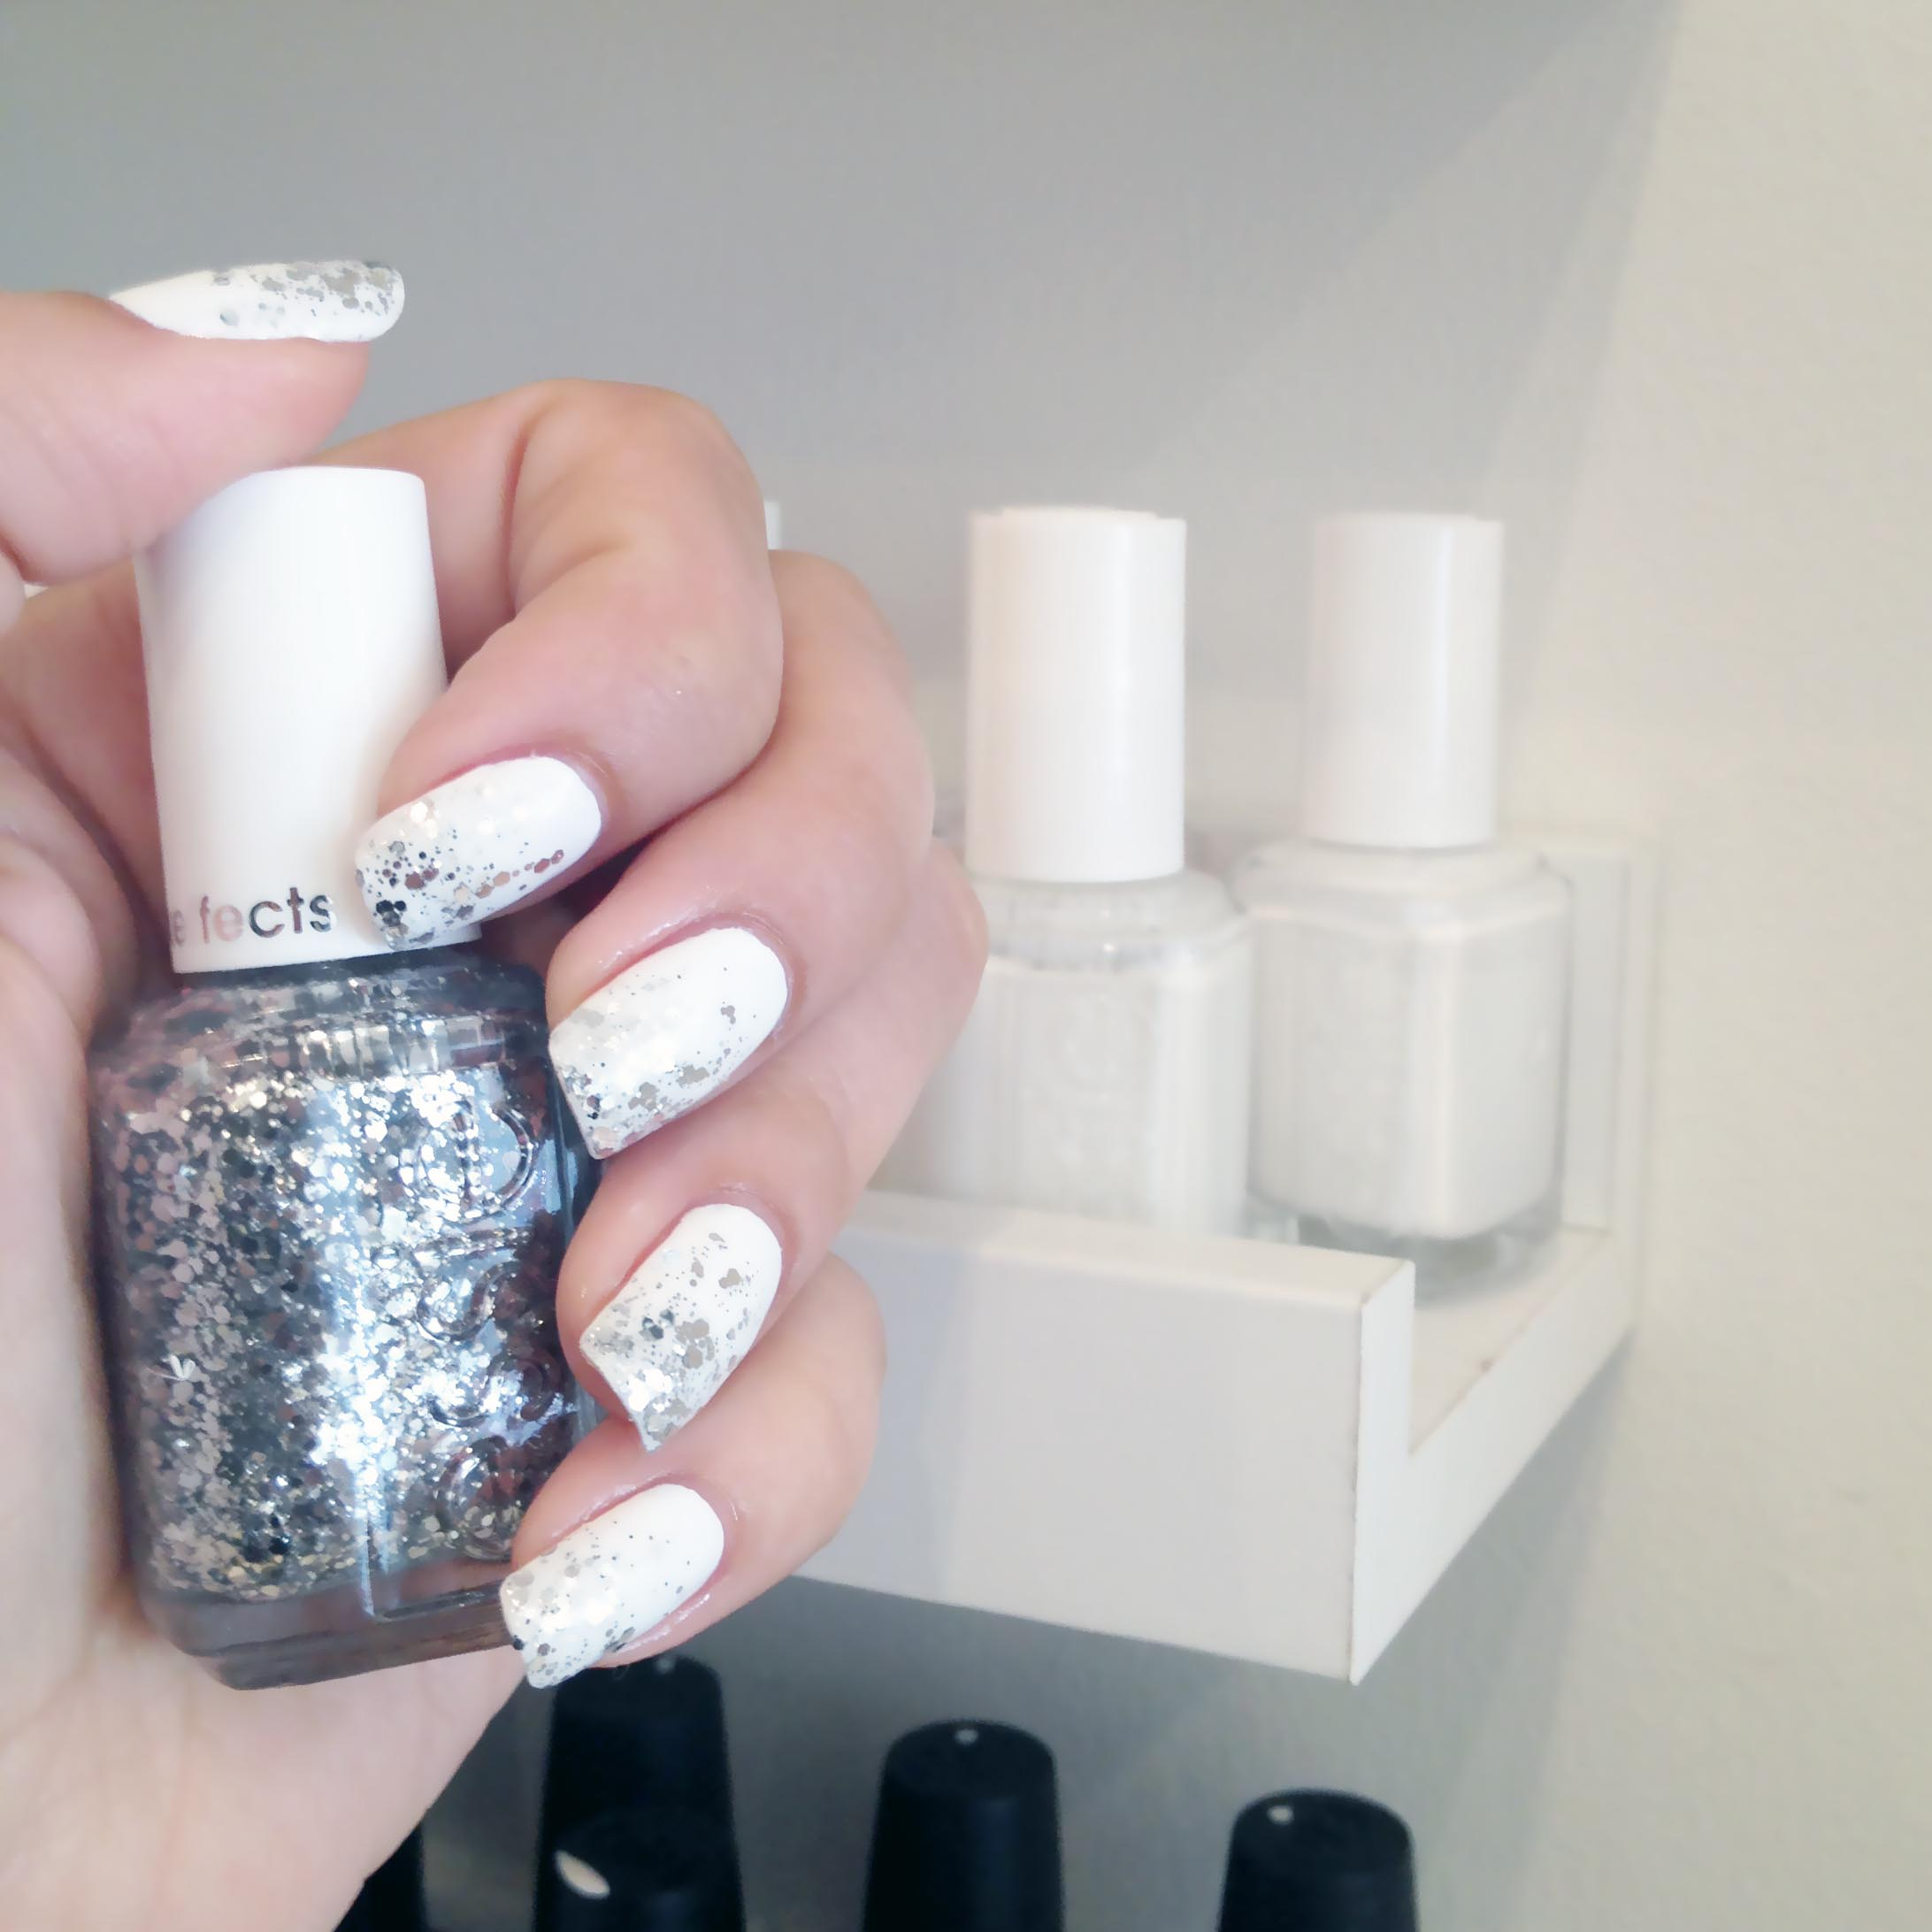 Holiday Nails, White and silver nails, silver glitter nail polish, Nails, Nail Art, Beauty, Essie, Nail Polish, Manicure, Toronto Spas, Whree to get a manicure toronto, Forest Hill, The Ten Spot